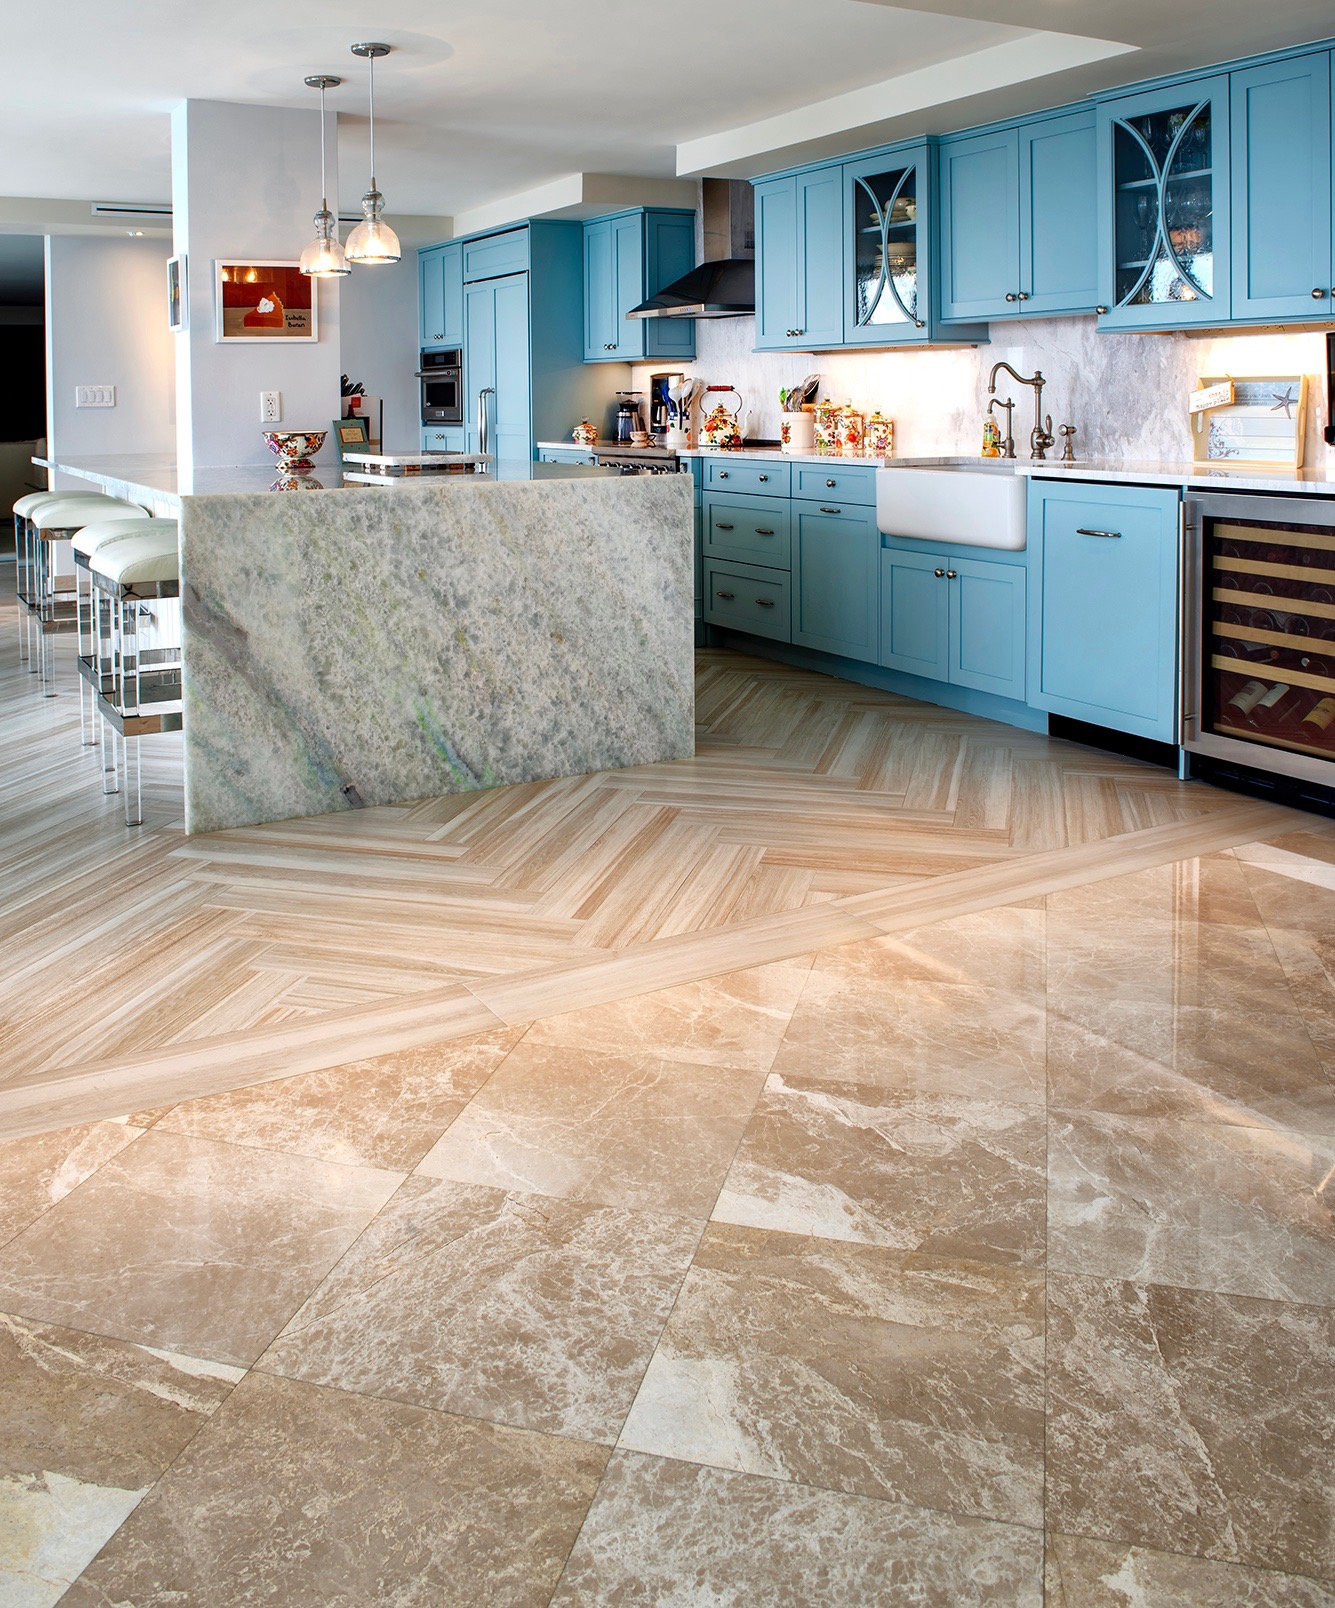 New large format square marble tiles flow into the sand-colored plank floor tiles.